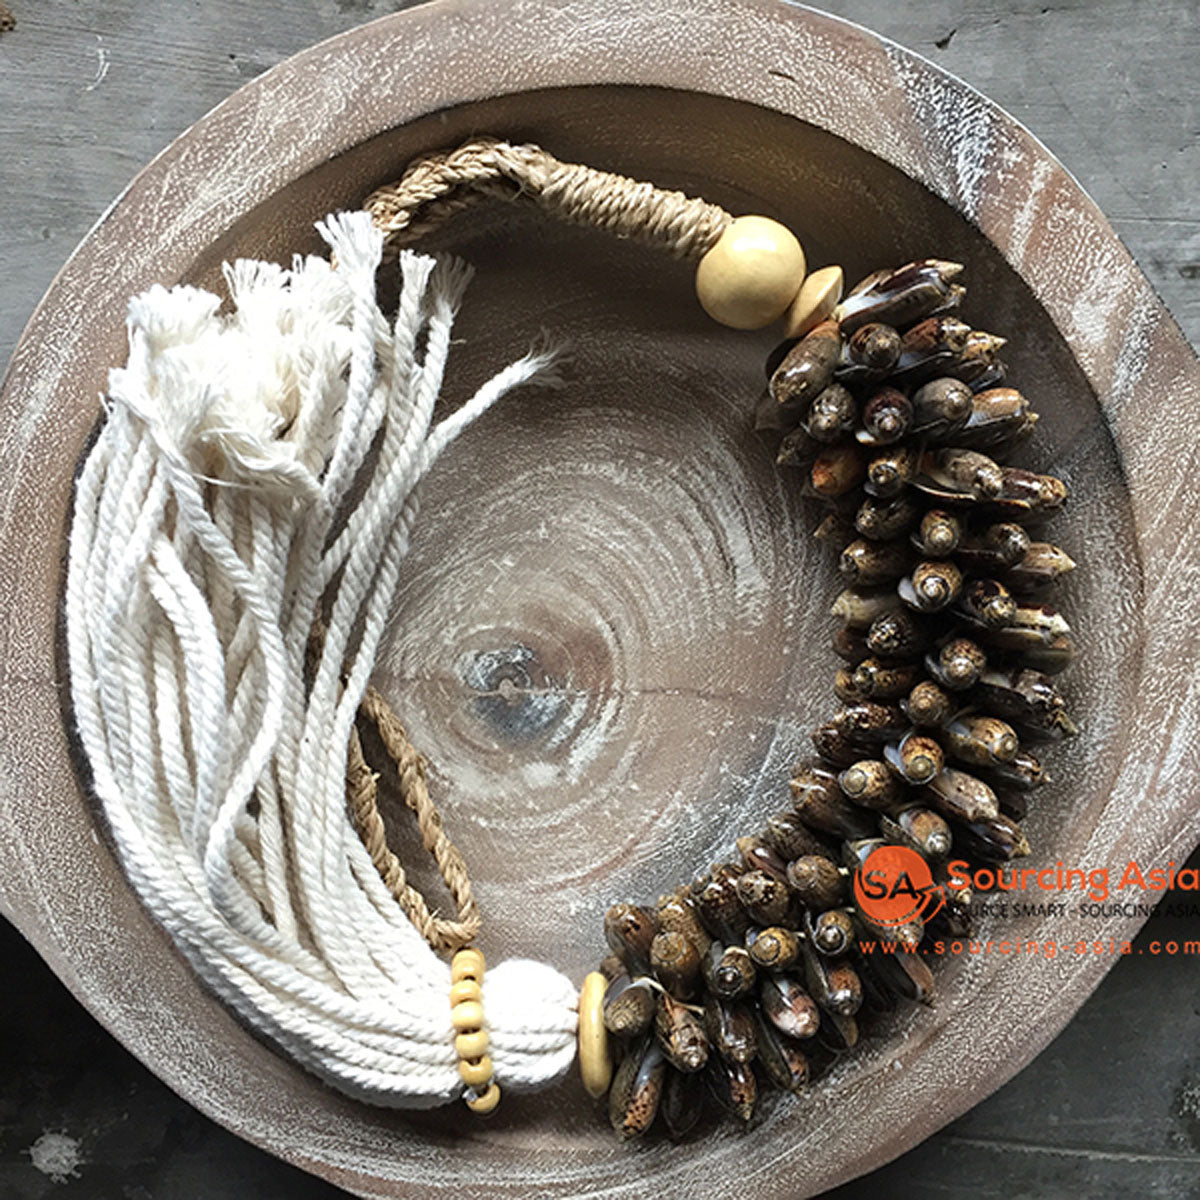 SHL047-22 NATURAL SHELL DECORATIVE TASSEL WITH MACRAME YARN